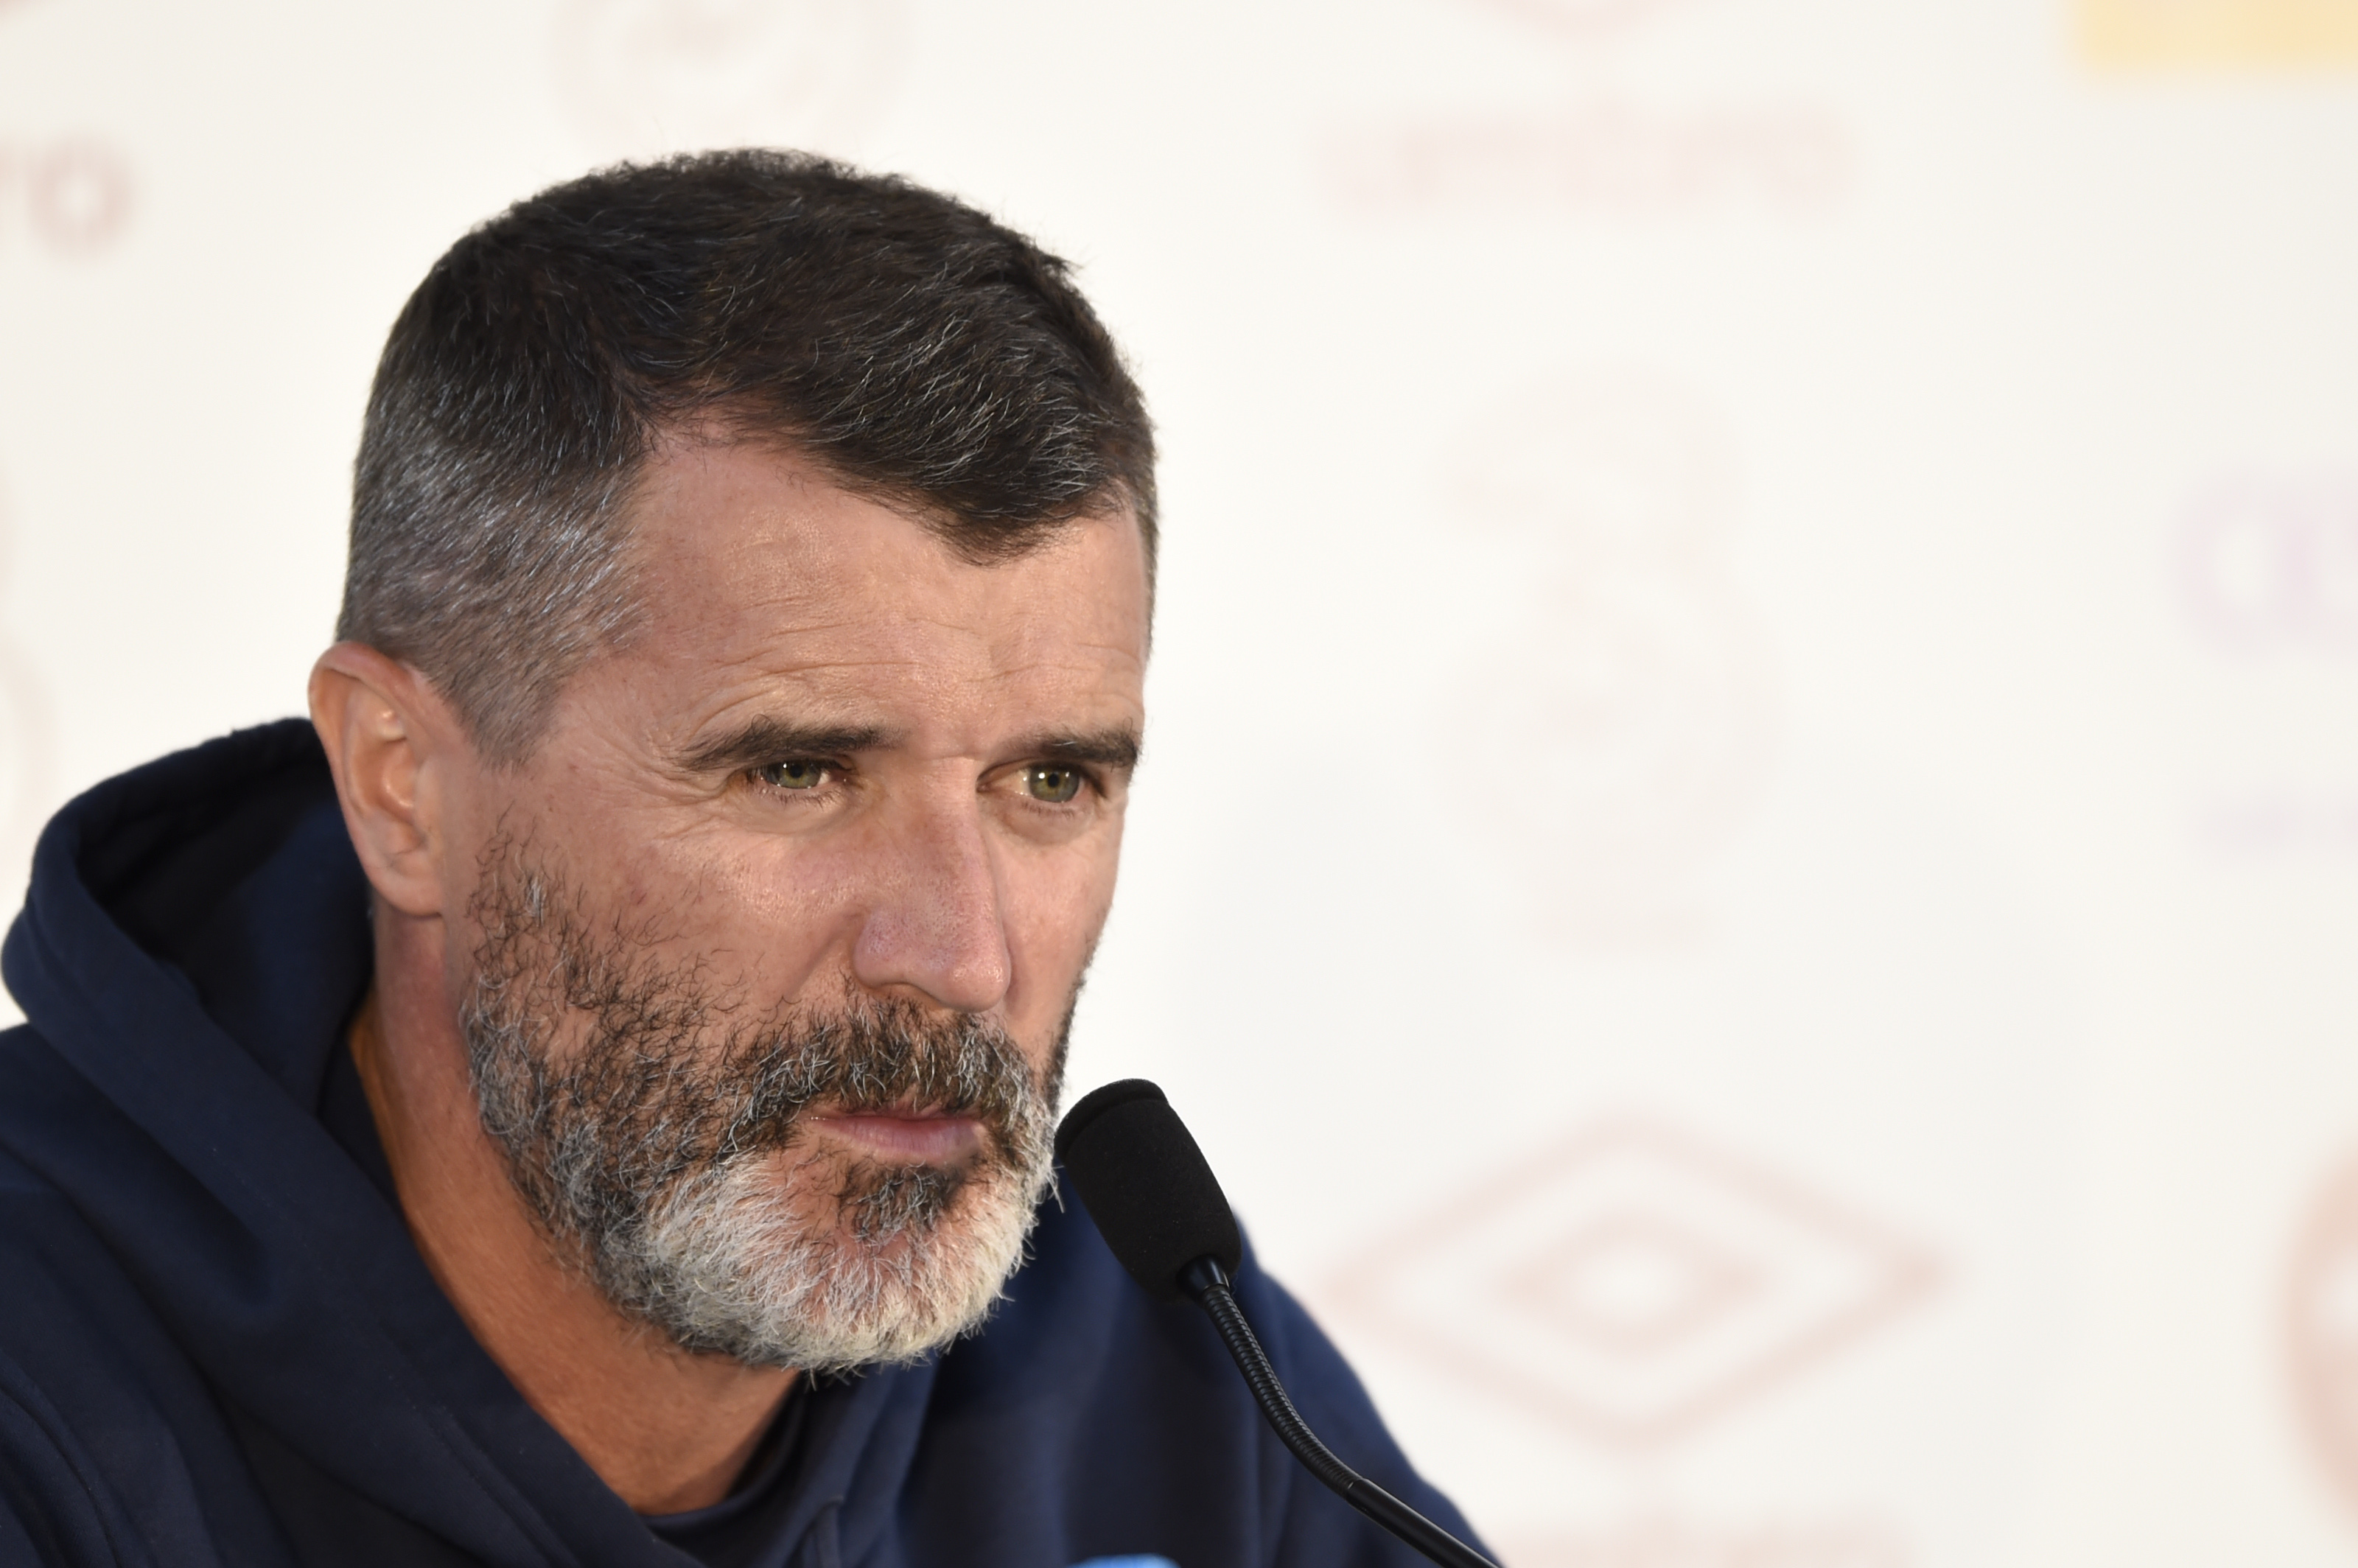 Manchester United legend Roy Keane complains beds are too soft in Ireland's training camp